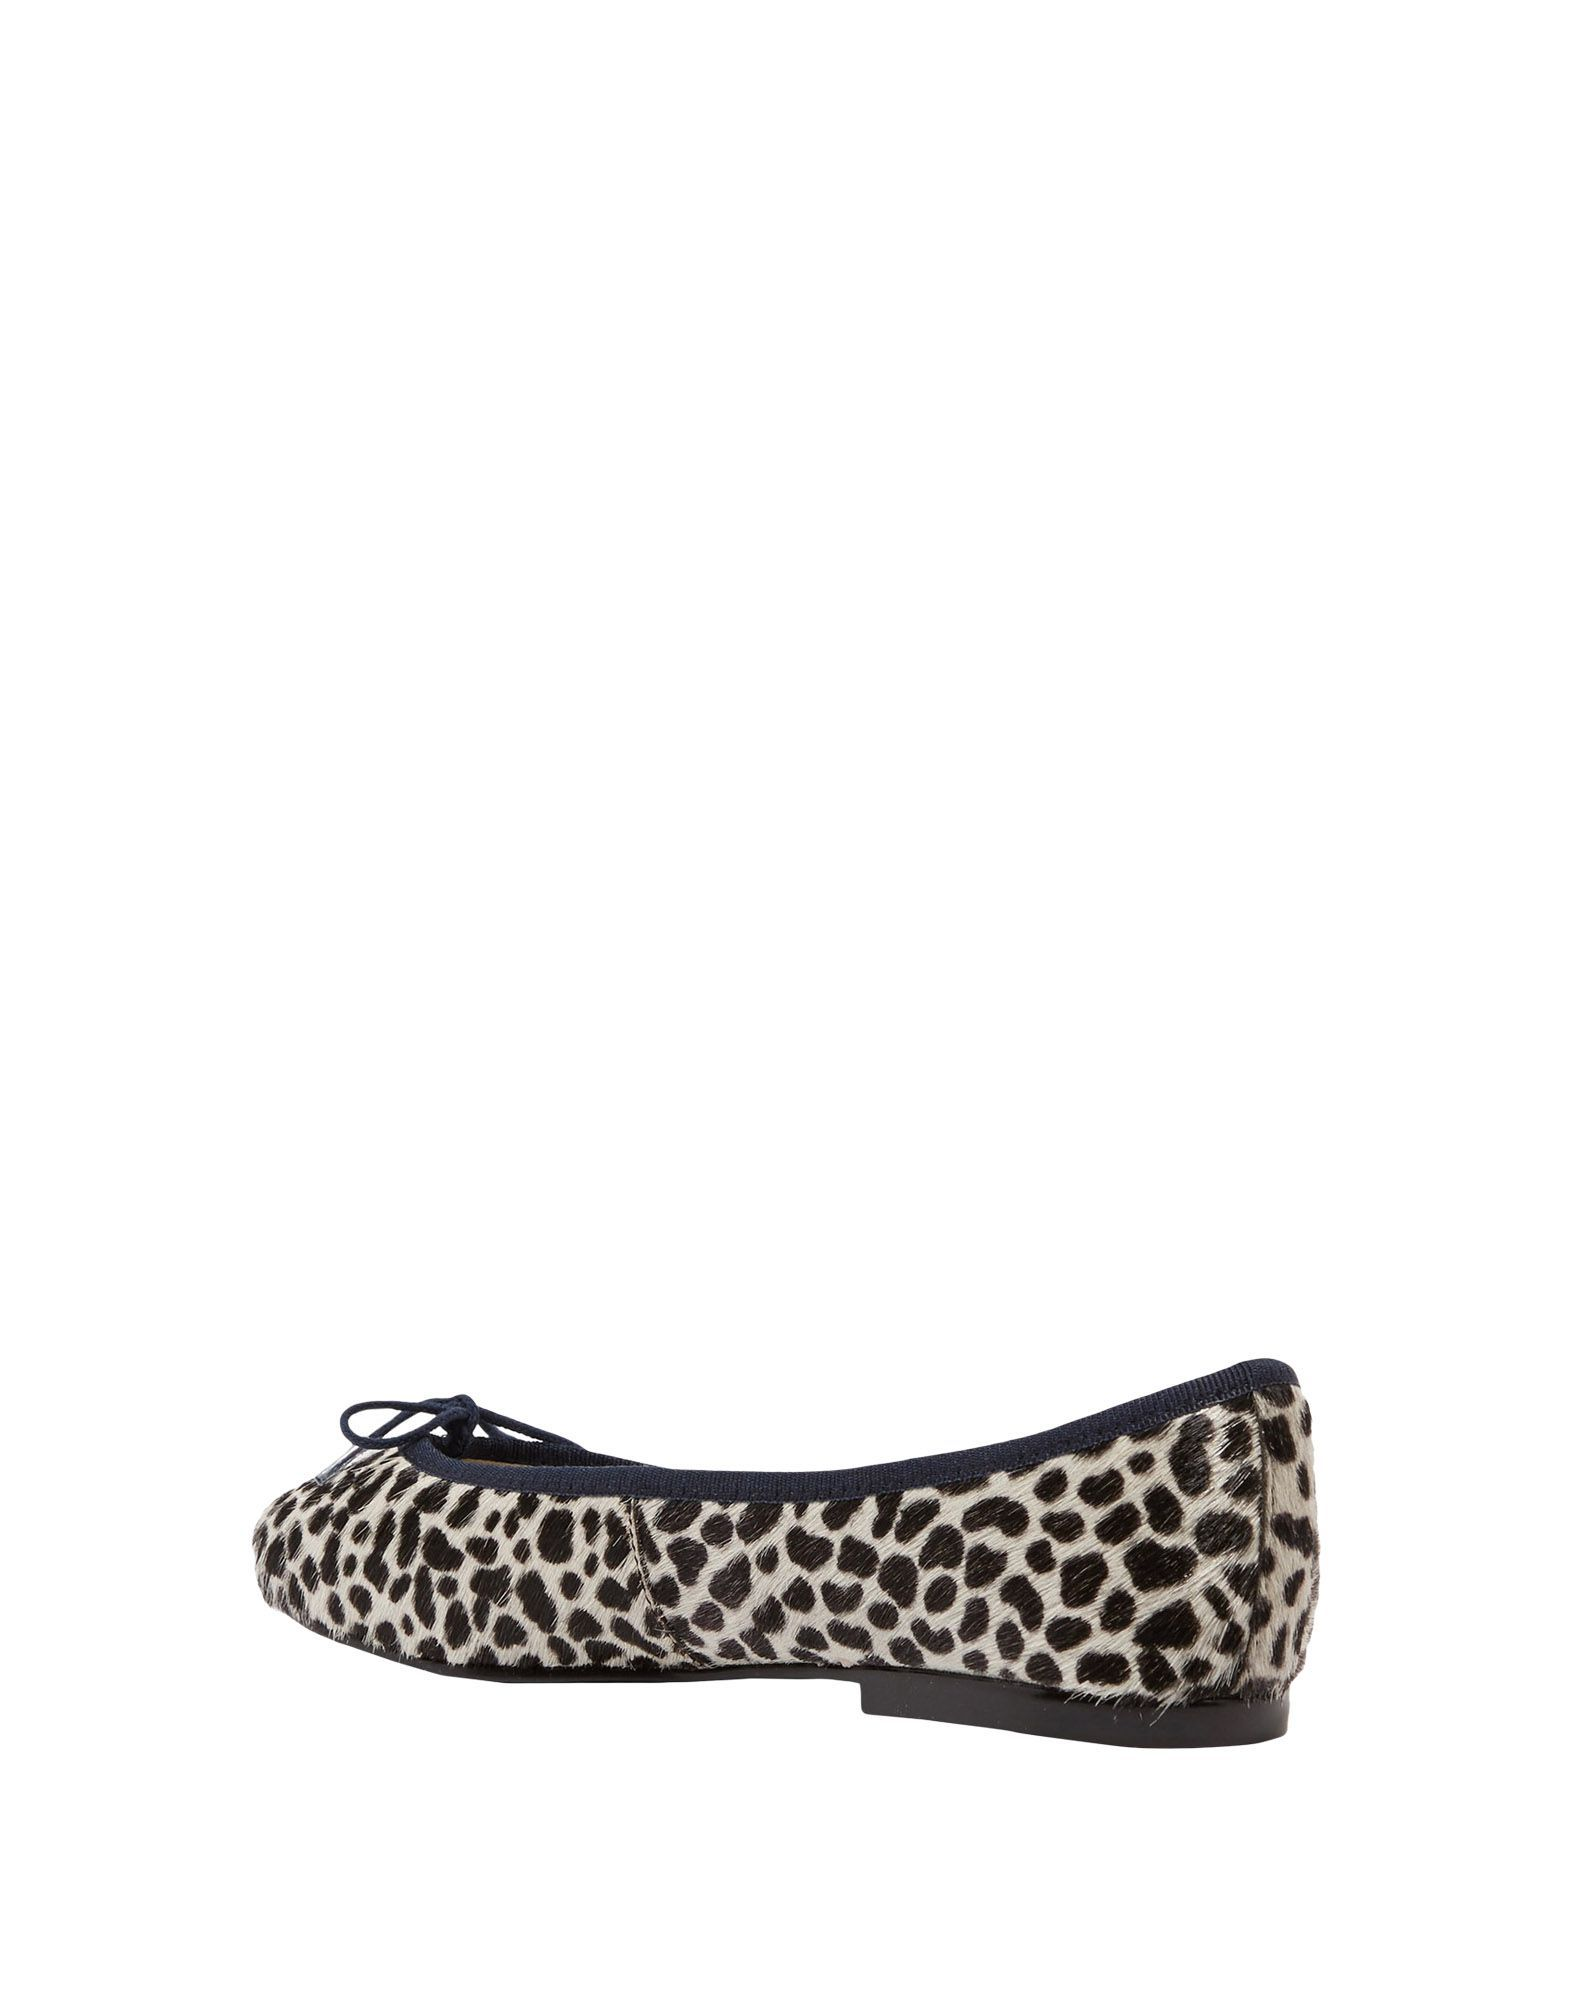 French Sole Black Leopard Print Leather Ballet Flats